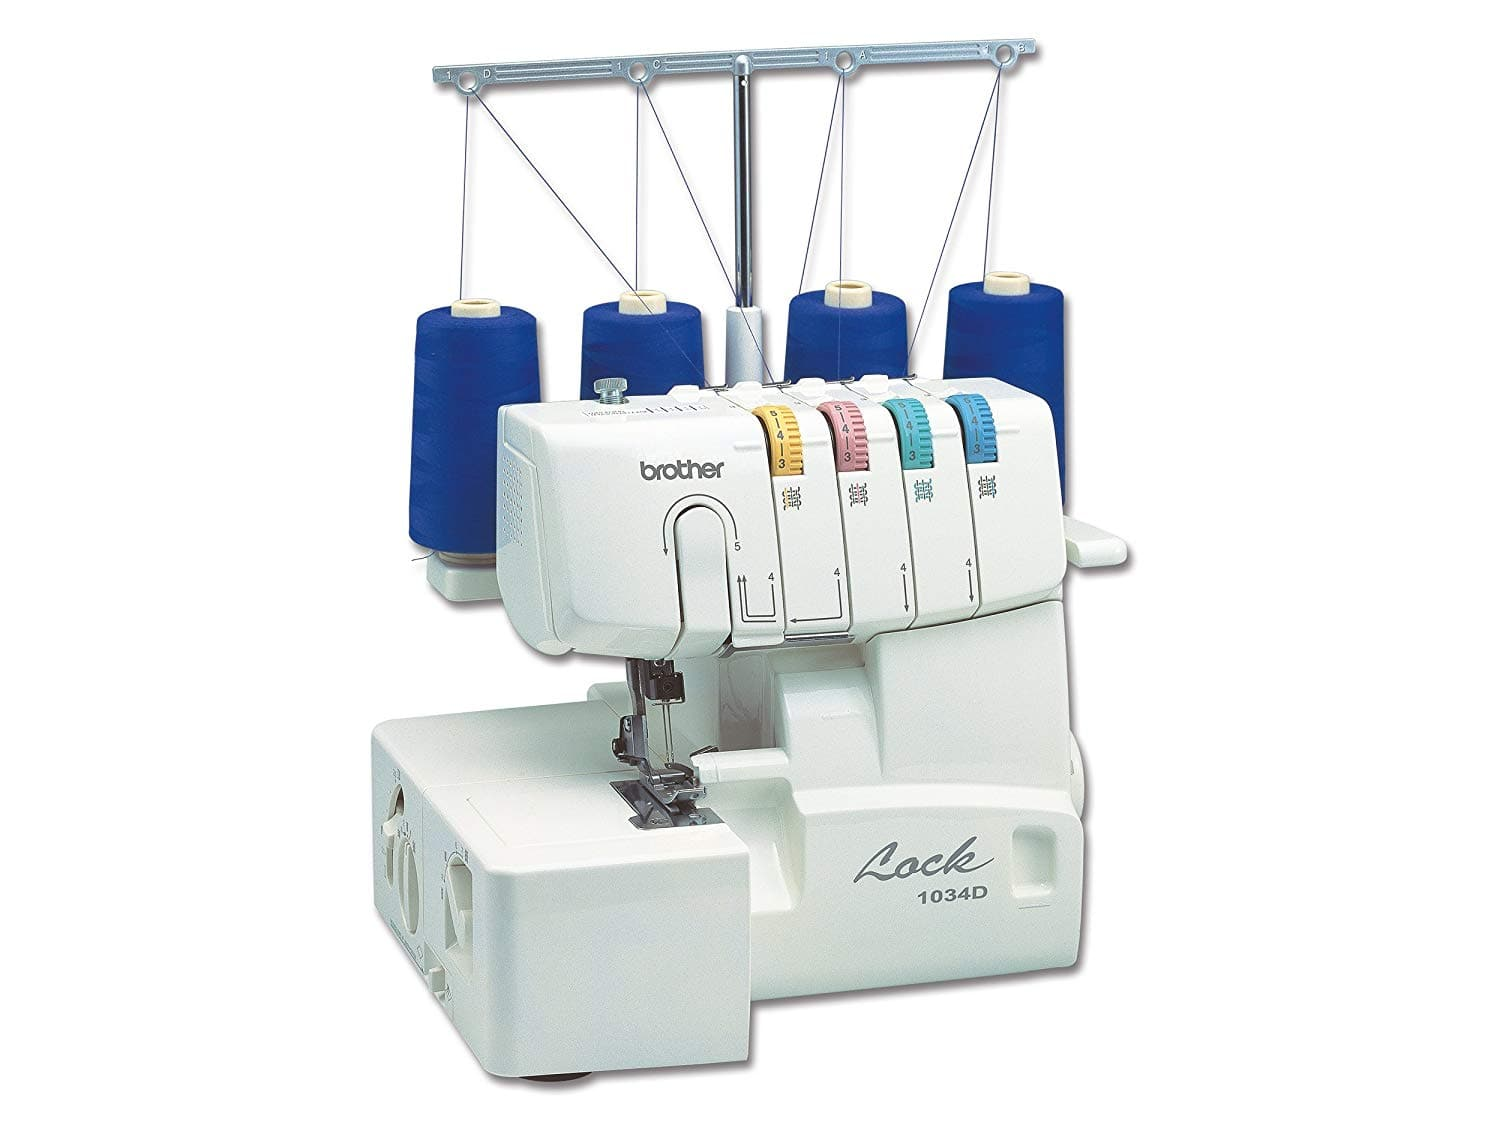 Brother 1034D 3/4 Thread Serger Sewing Machine w/ Differential Feed $132.99 + Free Shipping via Amazon